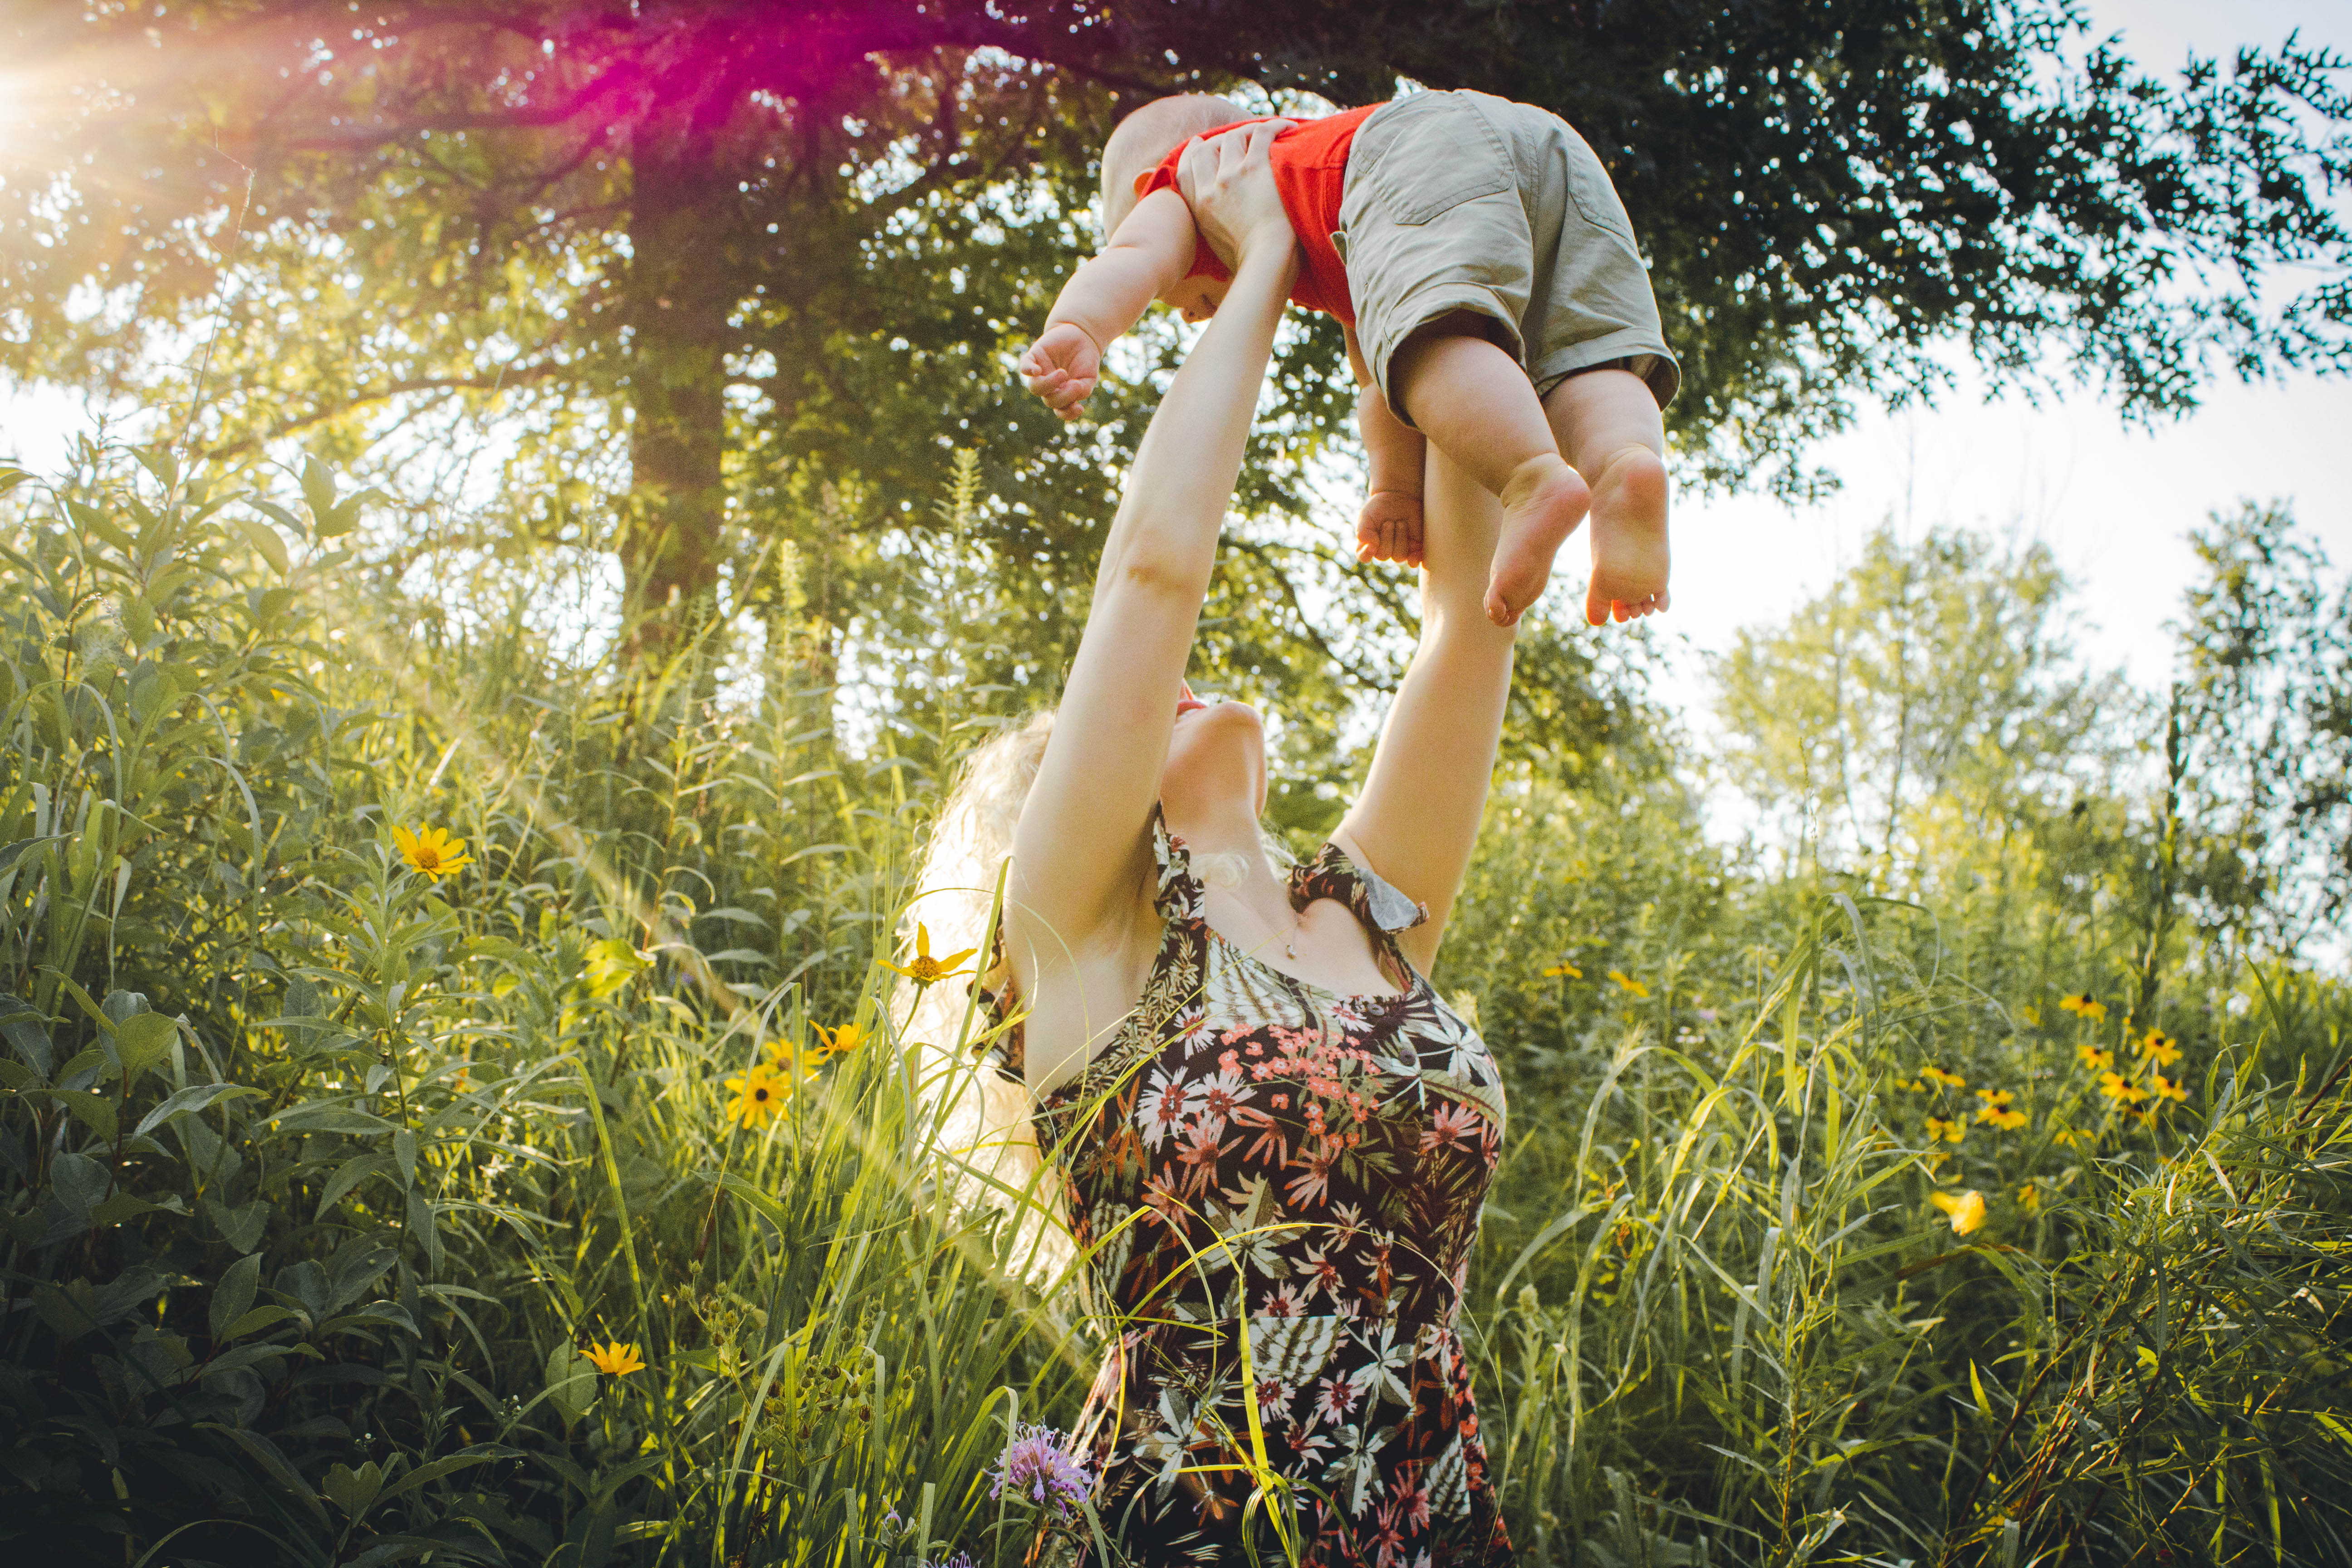 woman holding up baby in air, in field of flowers